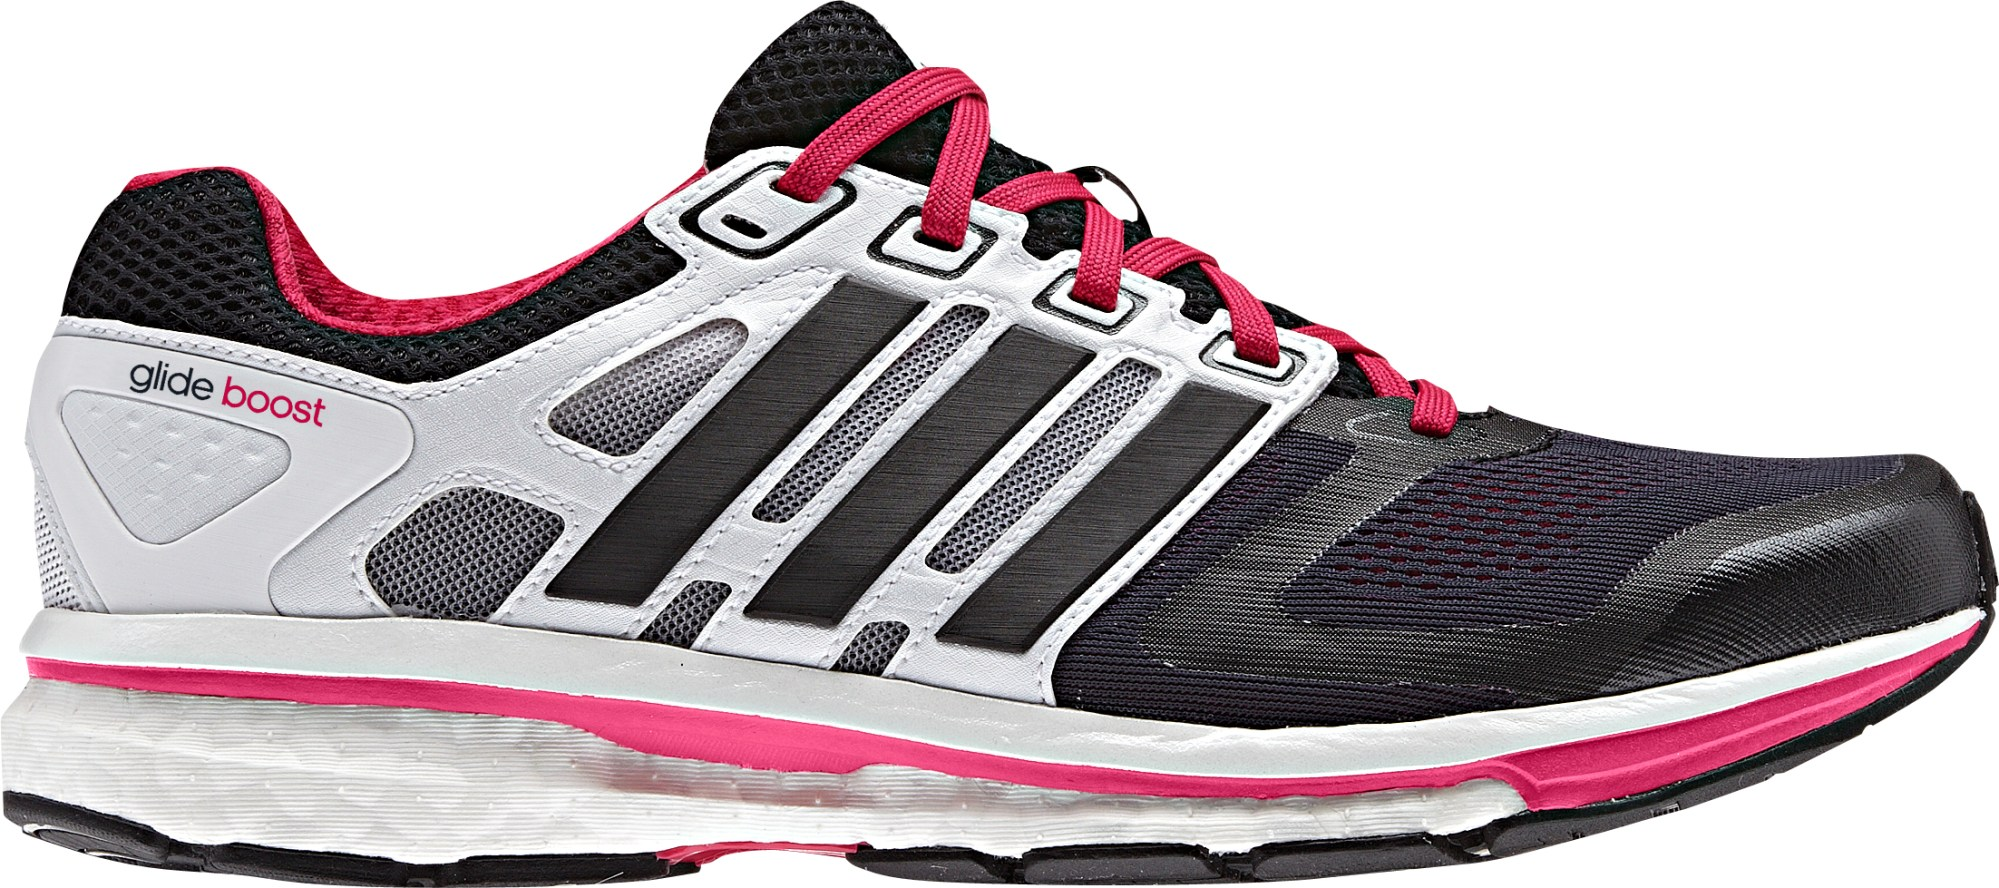 Wiggle | Adidas Women's Supernova Glide Boost 6 Shoes ...